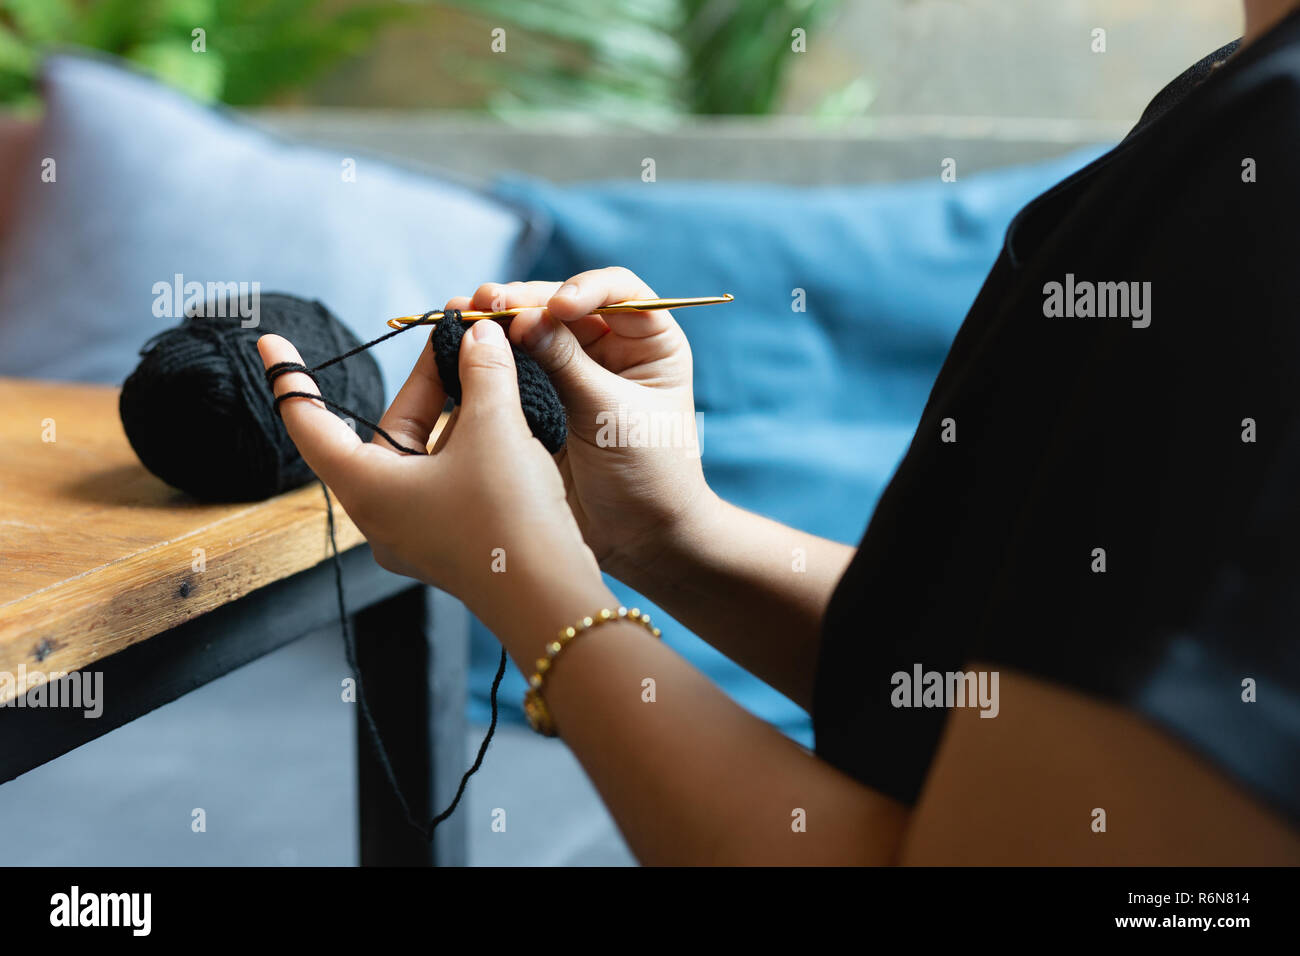 Woman's hands knitting crochet relaxing at cafe. - Stock Image